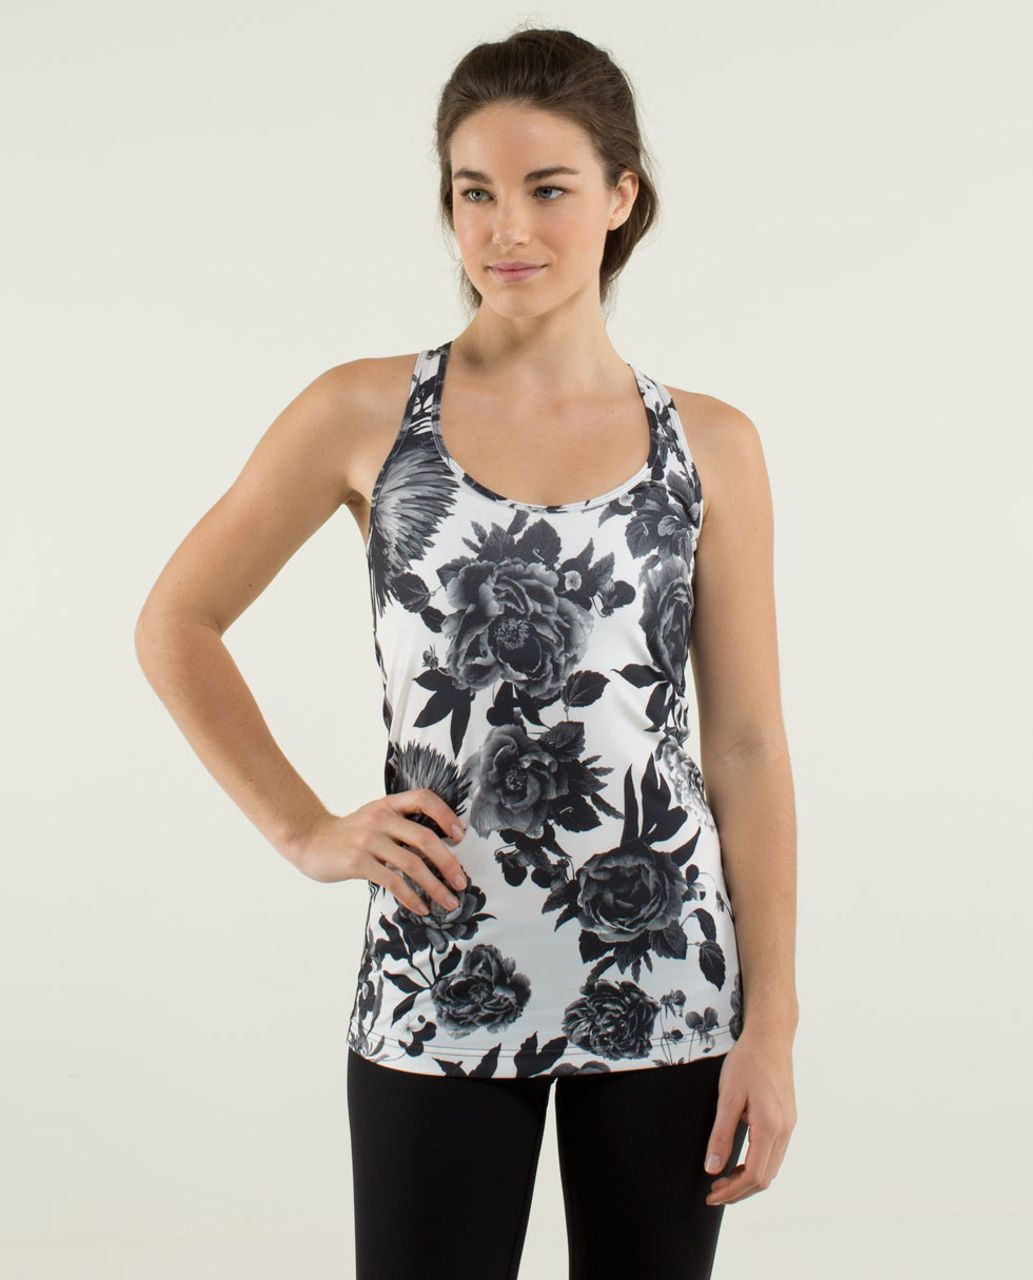 Lululemon Cool Racerback - Brisk Bloom Black White